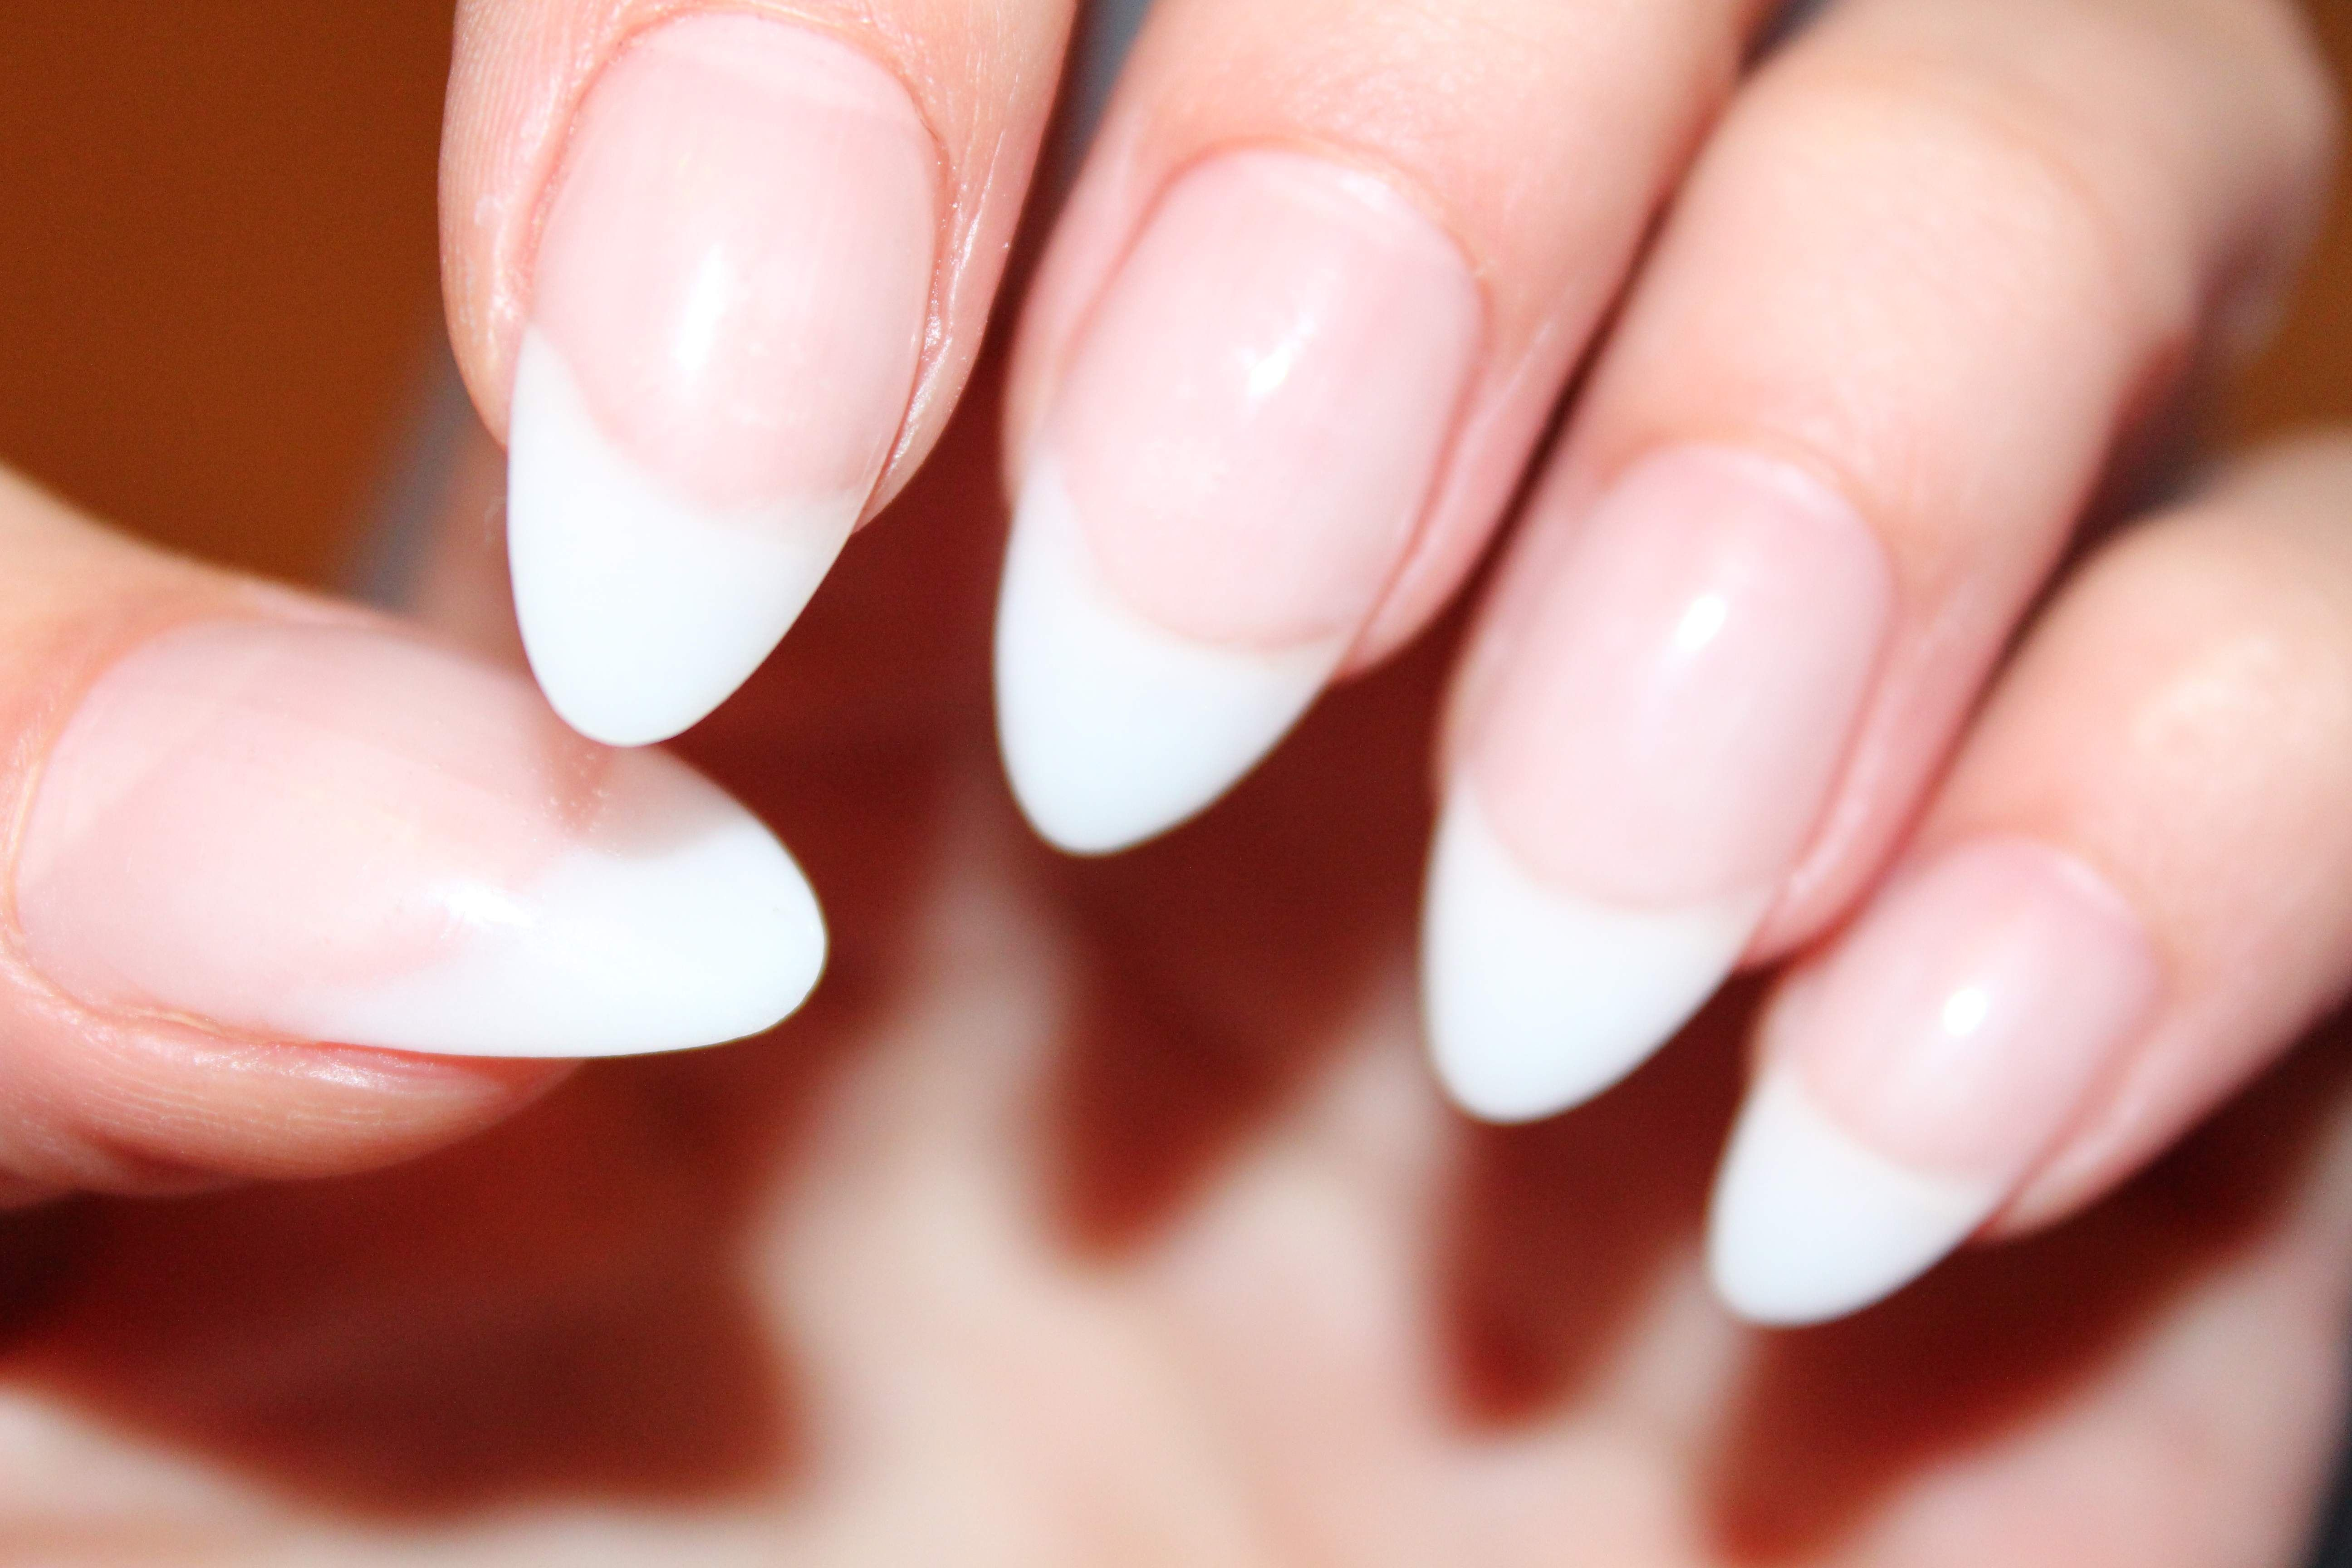 Almond-shaped nails #ManiMonday #nailtrends #nailsnailsnails ...